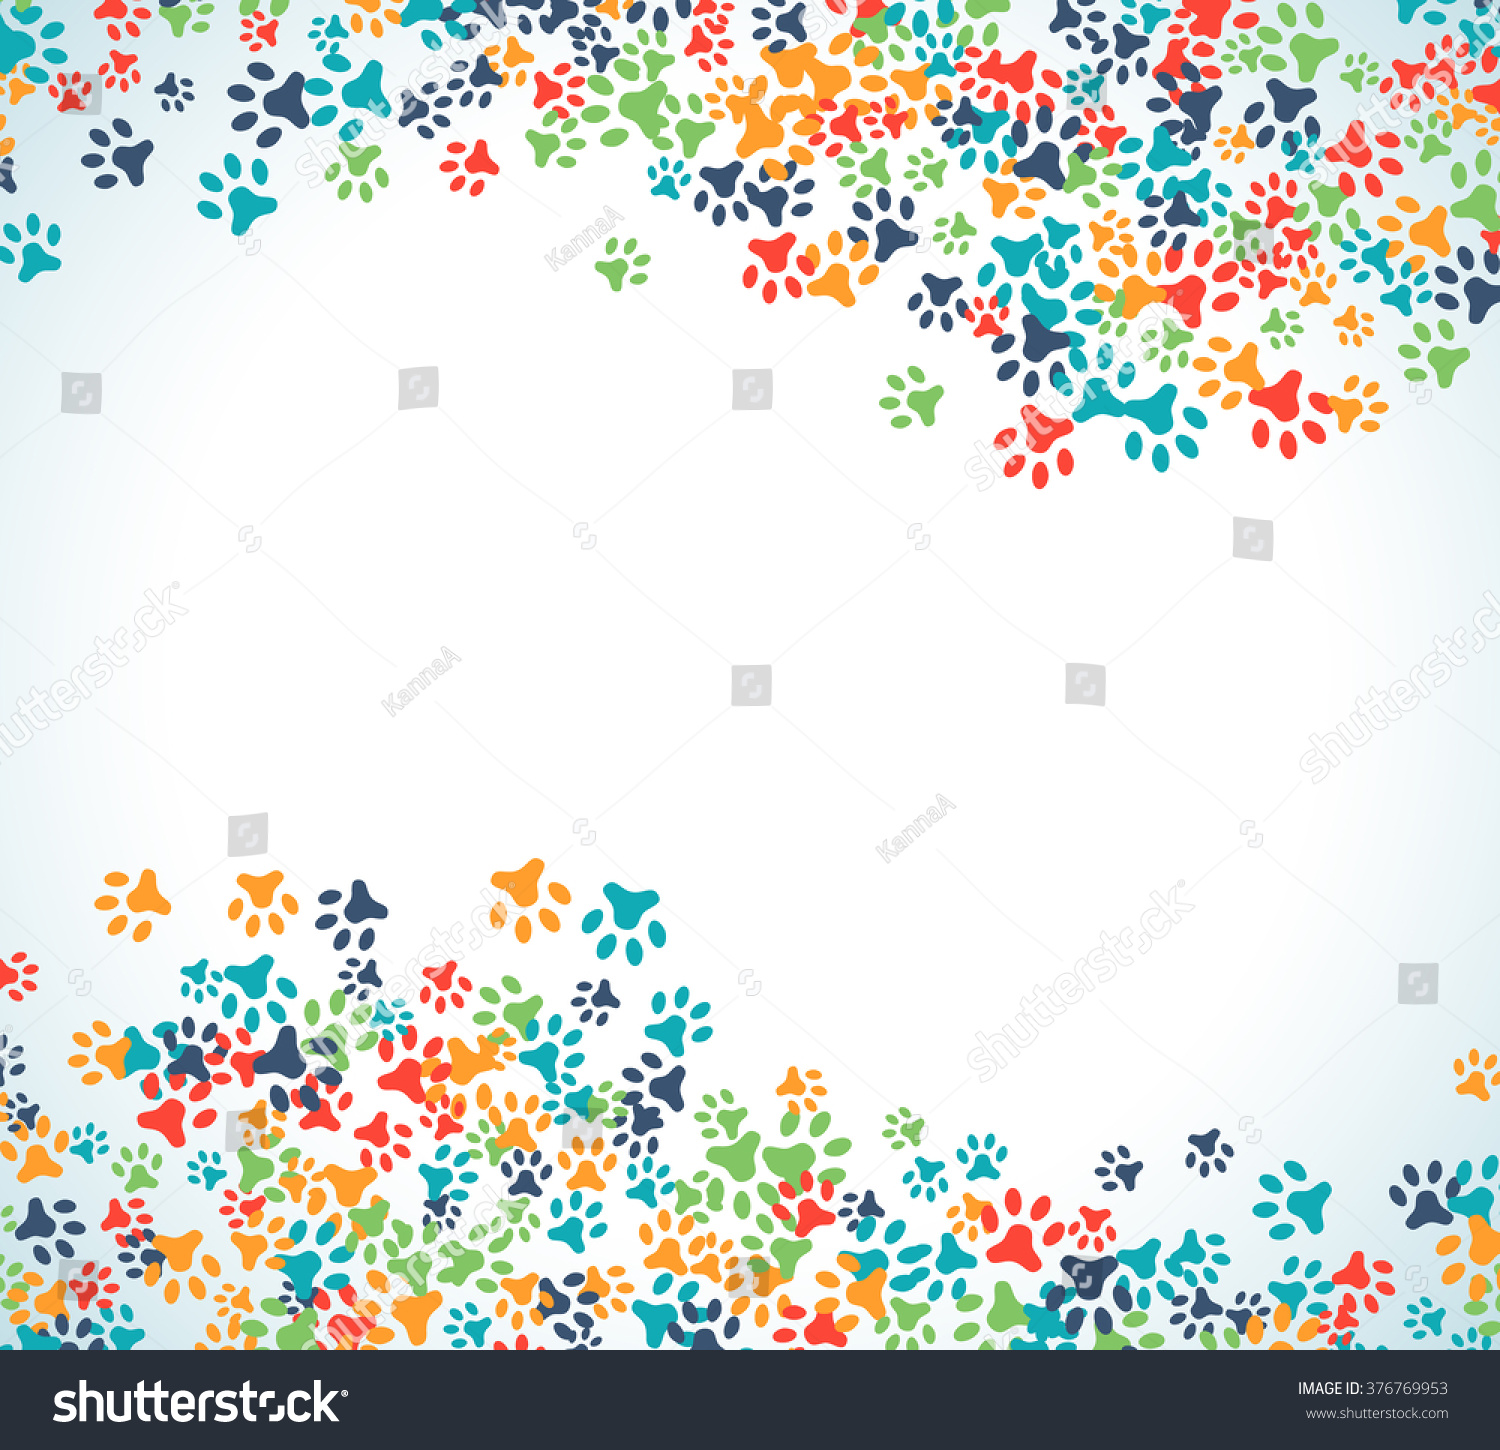 Colorful Animal Footprint Ornament Border Isolated Stock ...